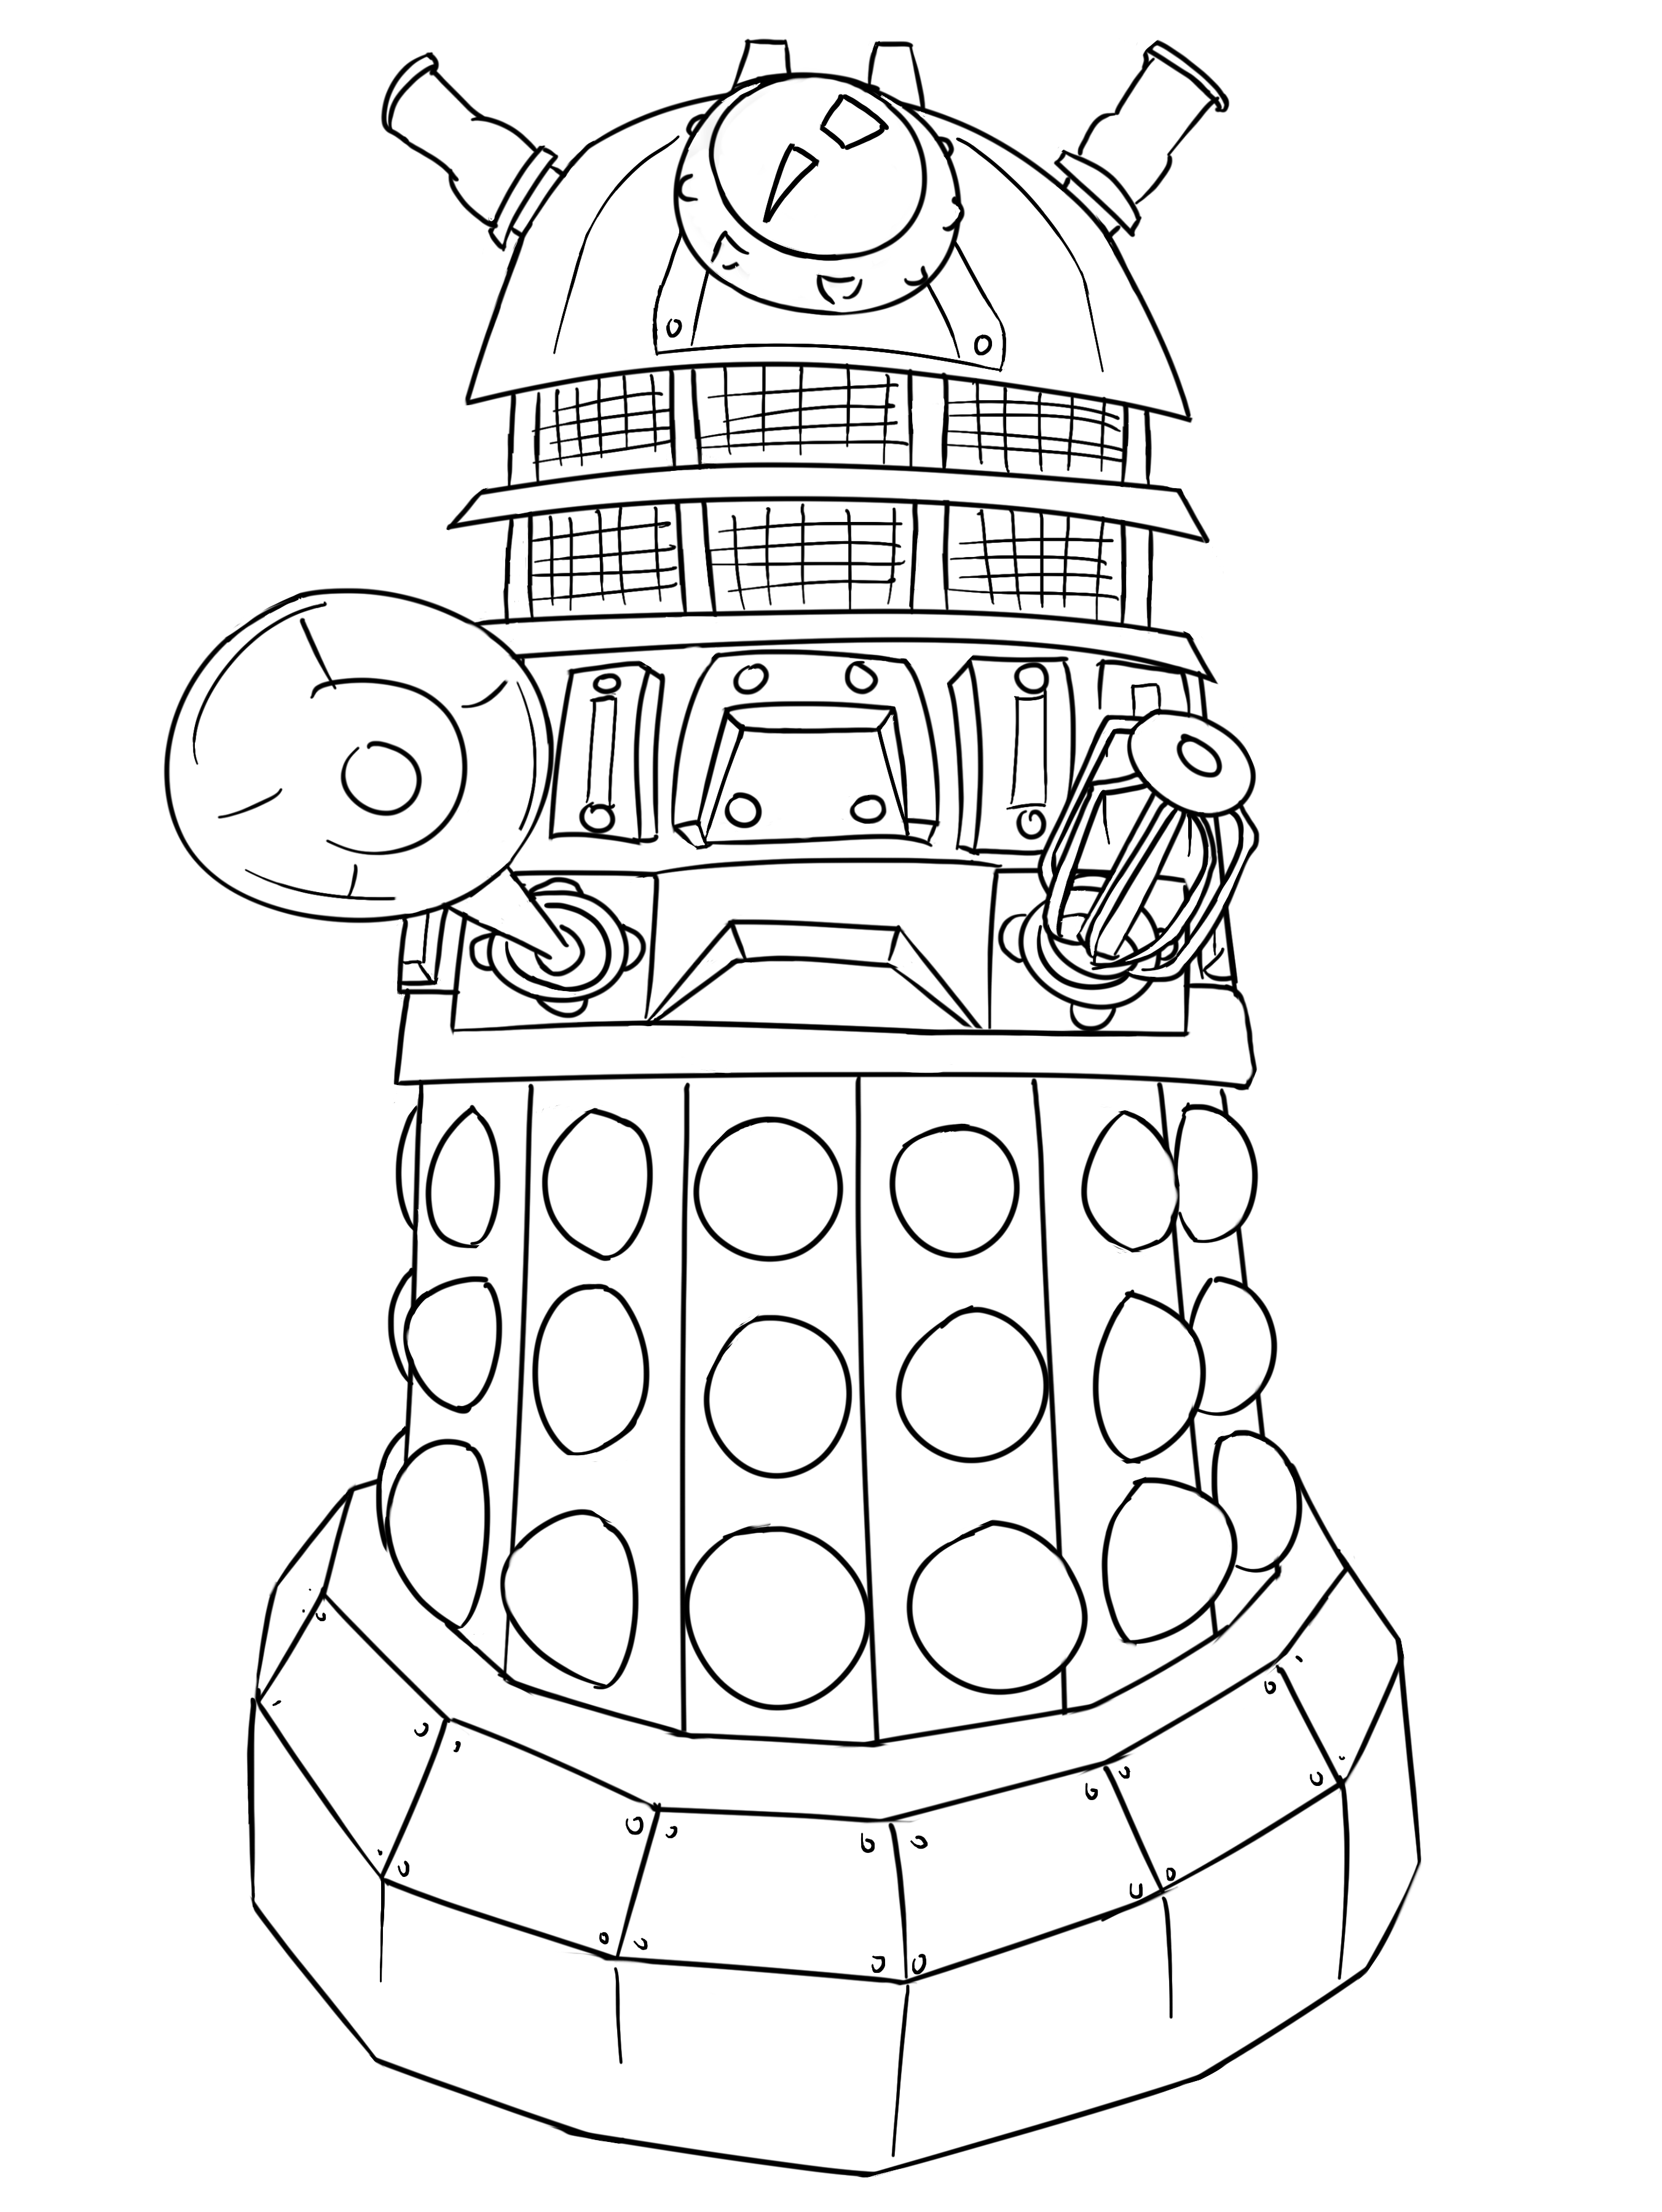 Share Coloring Pages Doctor Who